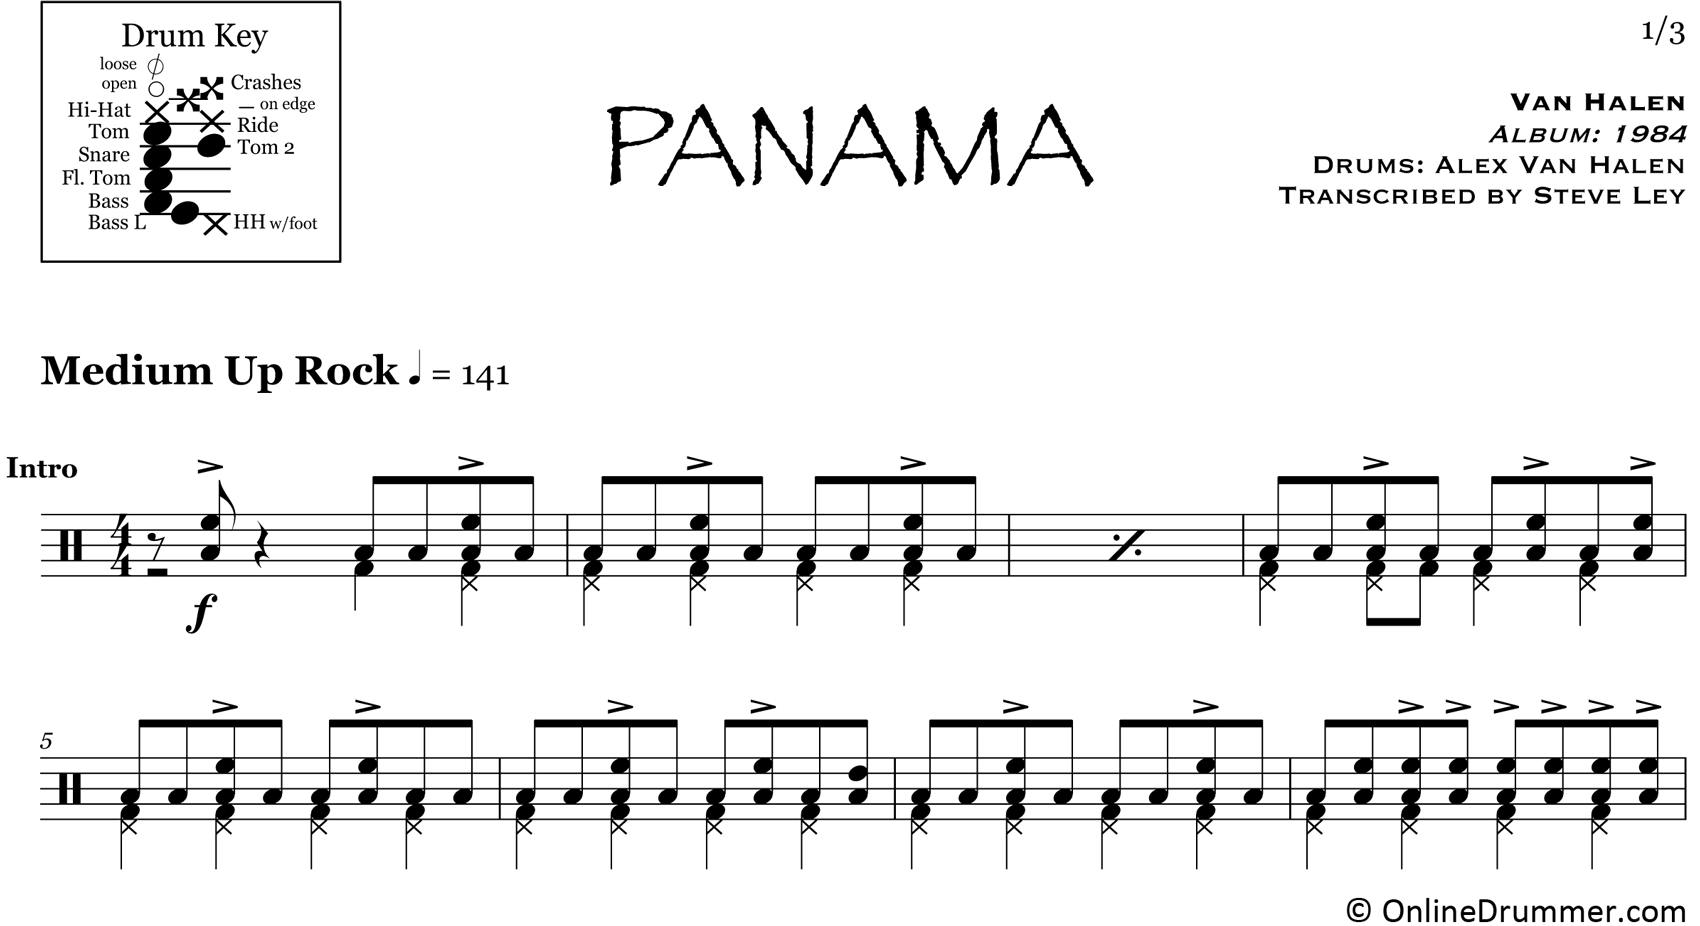 Panama - Van Halen - Drum Sheet Music